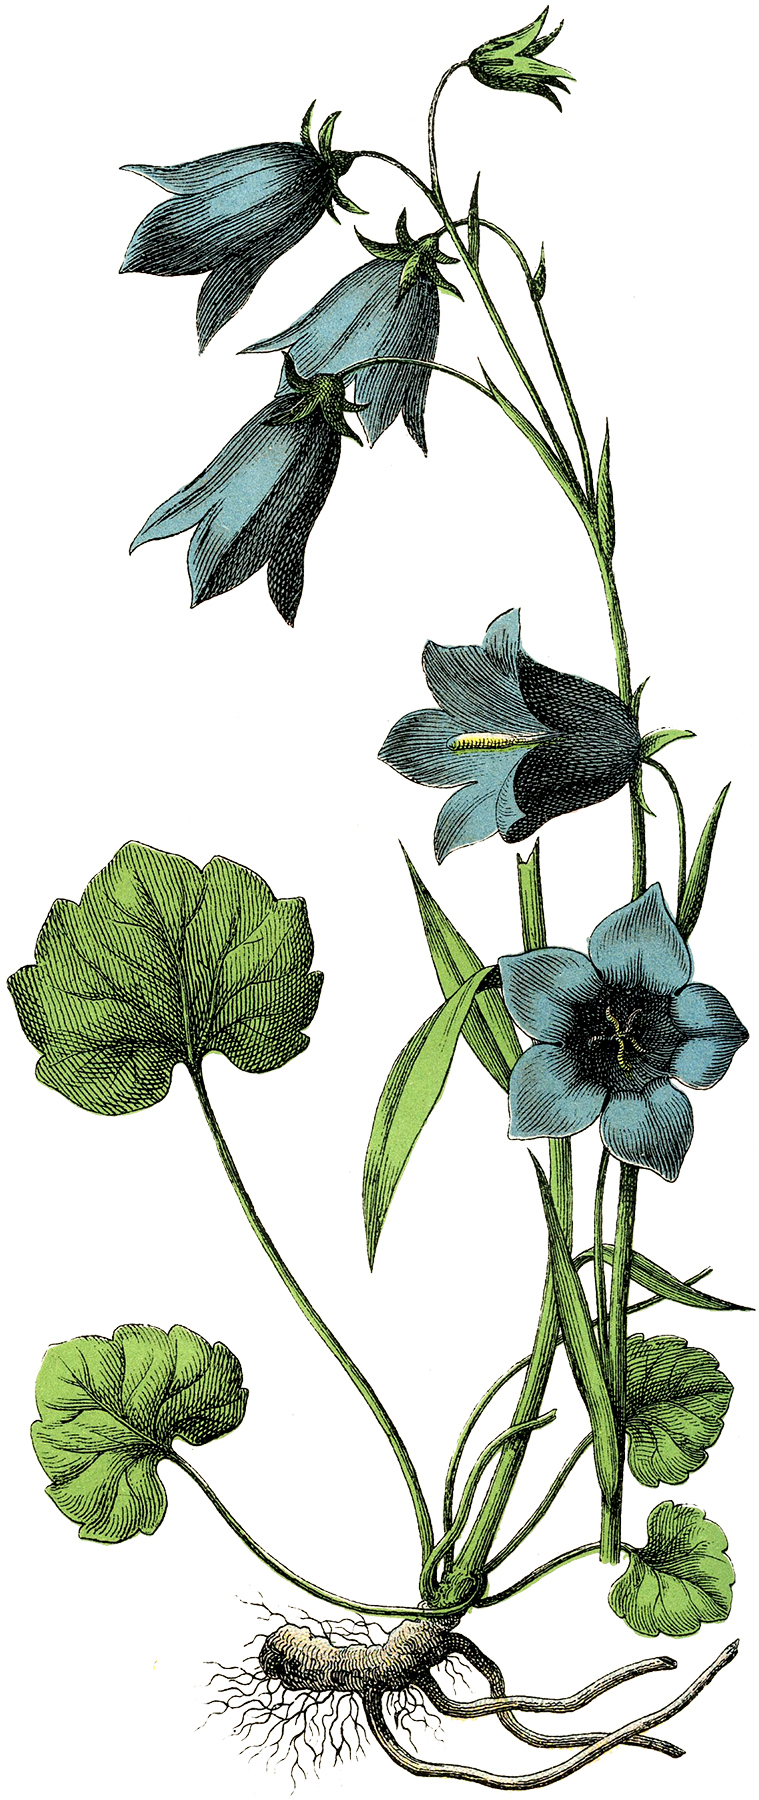 8 Blue Flowers Images - Botanical! - The Graphics Fairy